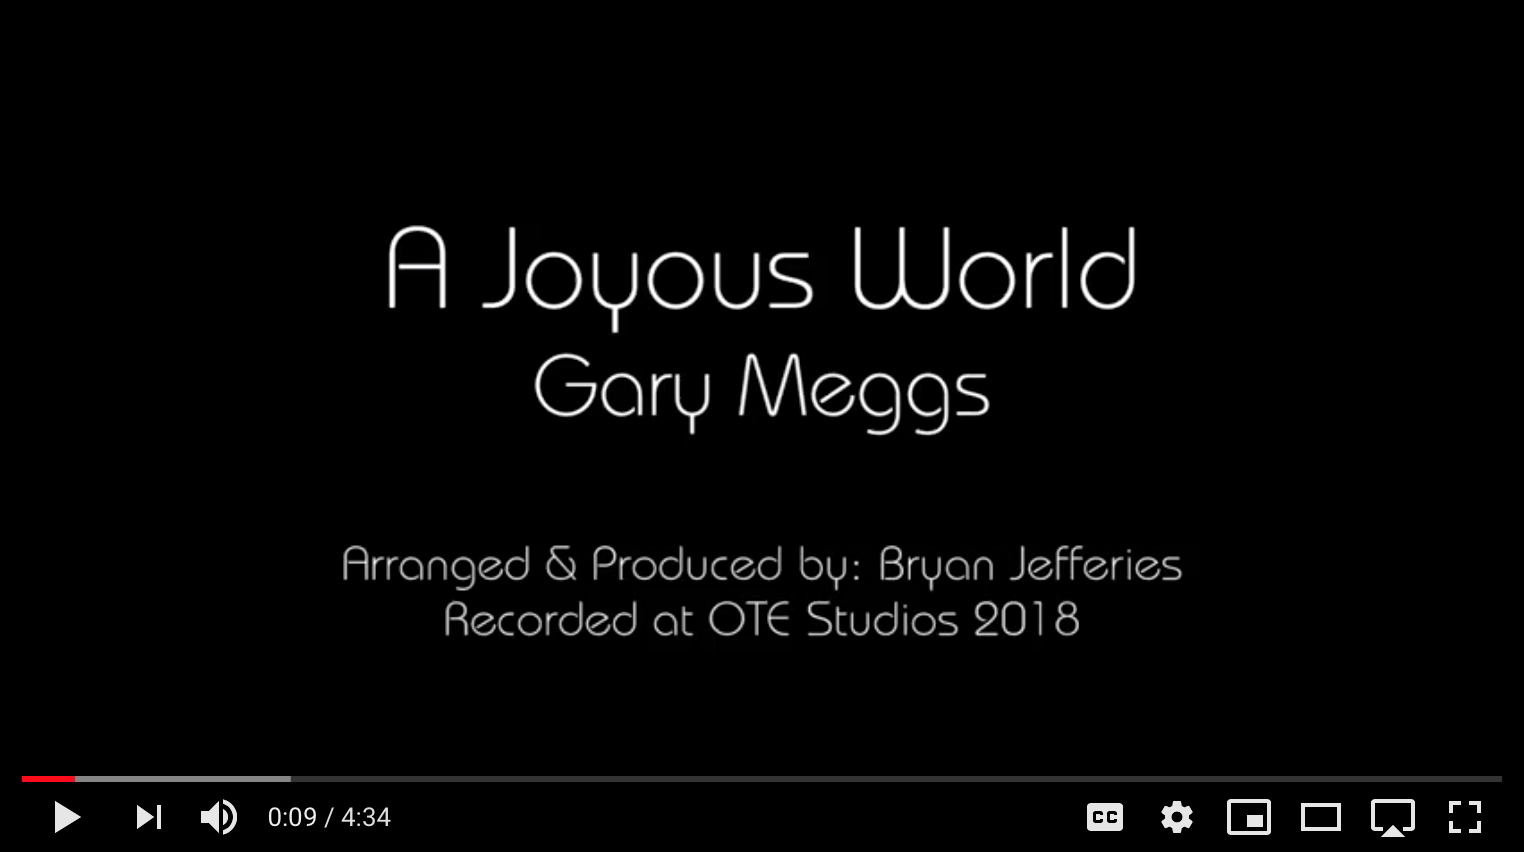 Gary Meggs - A Joyous World